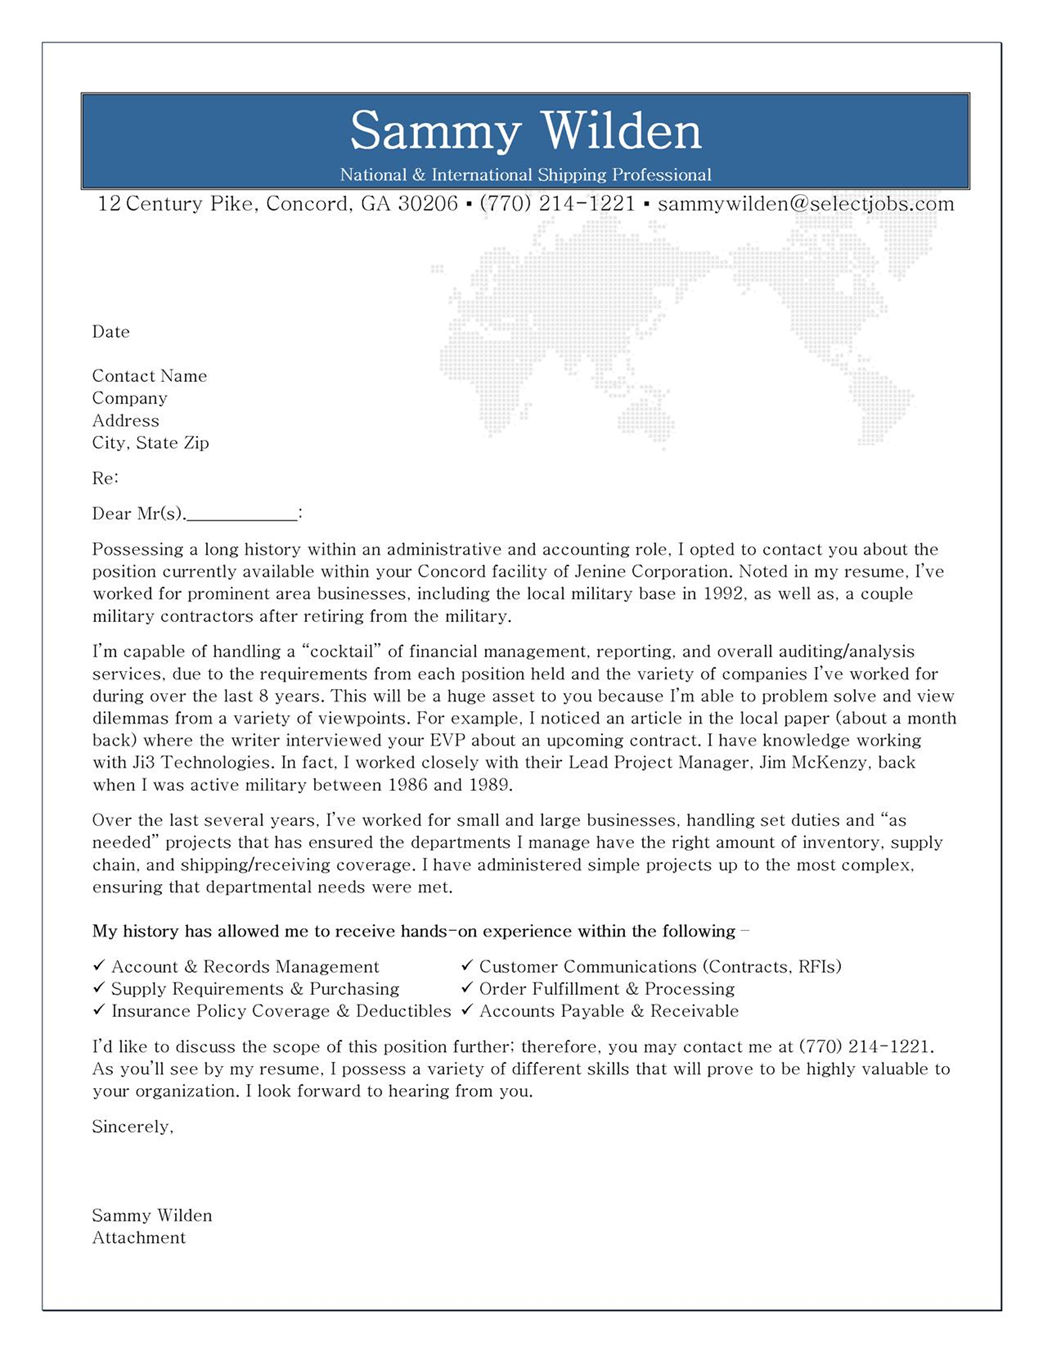 Cover Letter Example for Shipping Receiving Professional – Professional Cover Letters Examples